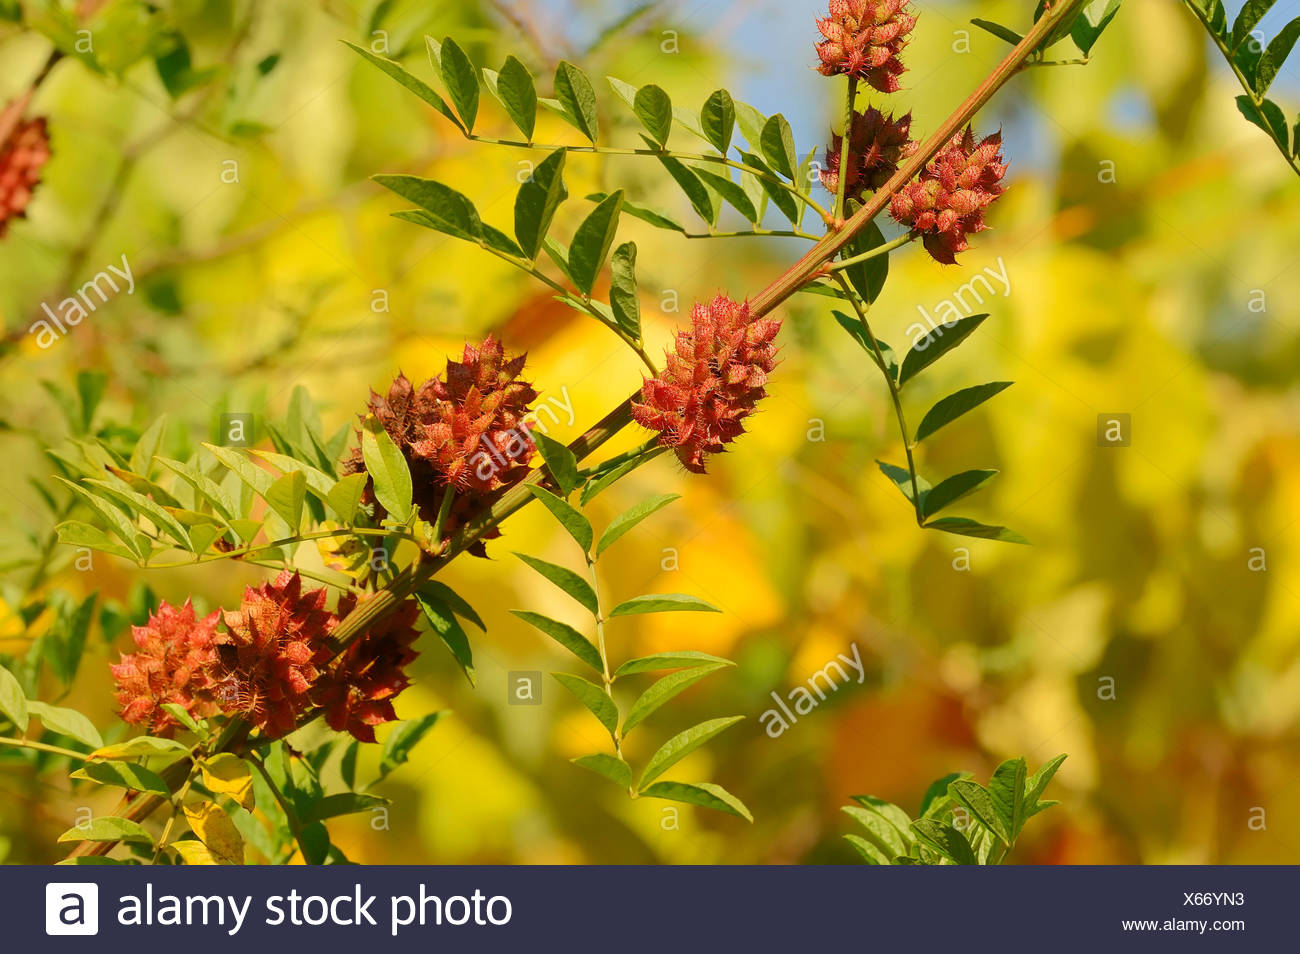 Licorice (Glycyrrhiza glabra), branch with fruit, Germany Stock Photo